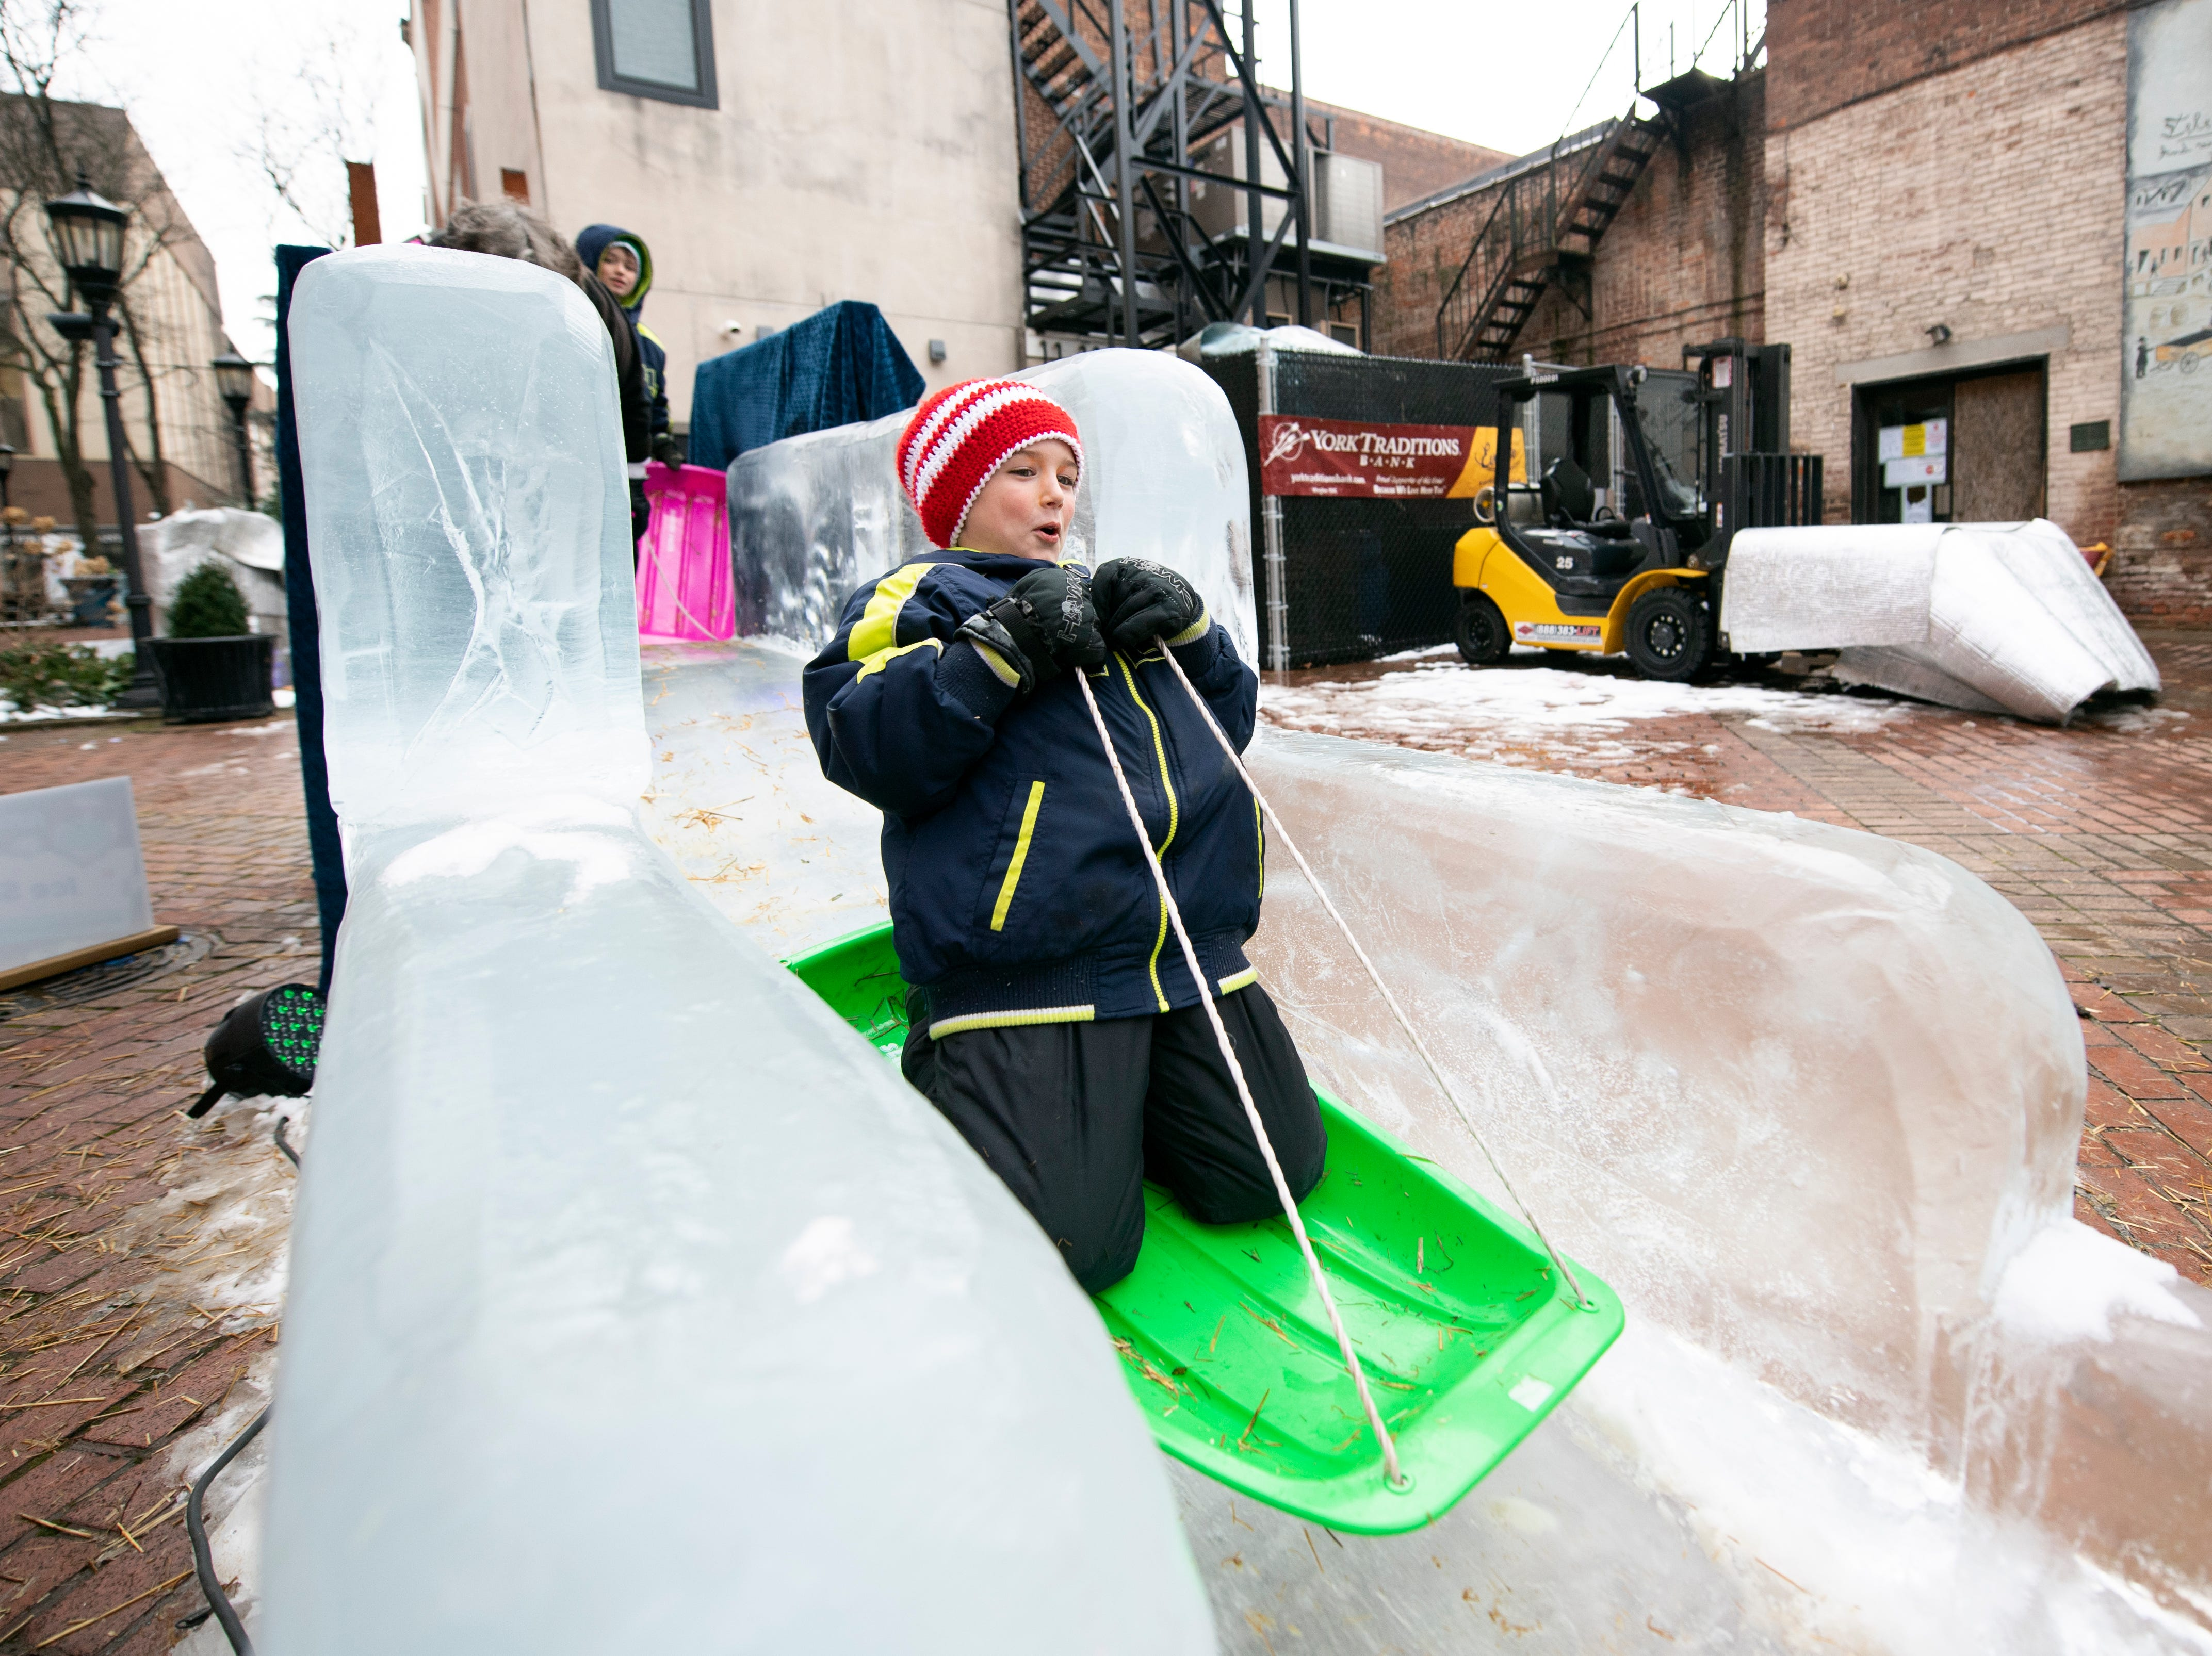 Dyllan Arnold, 6, of East York, rides a sled down the 40-foot ice slide in Cherry Lane, downtown, Friday, Jan. 18, 2019. The FestivICE ice festival has interactive ice sculptures, an ice slide and more. The three-day event ends Saturday.